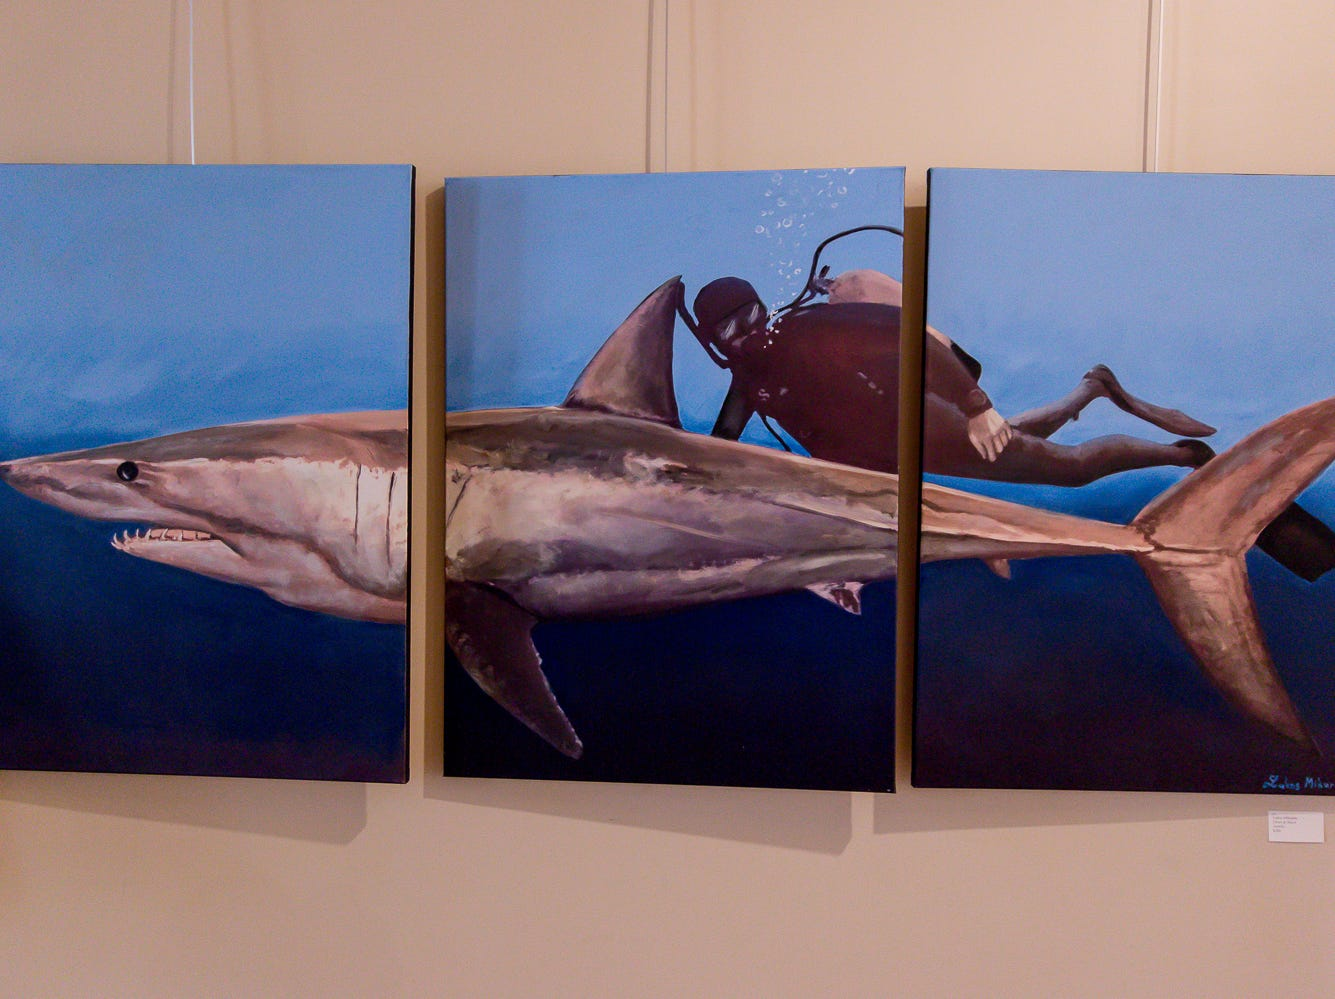 """Diver & Shark,"" a three panel acrylic painting by Lukas Mikurda, is one of over 100 pieces on display as part of the ""Cinco Banderas Collection"" at the Artel Gallery on Tuesday, October 30, 2018. The exhibit, which runs through November 30, is celebrating its 30th anniversary this year."